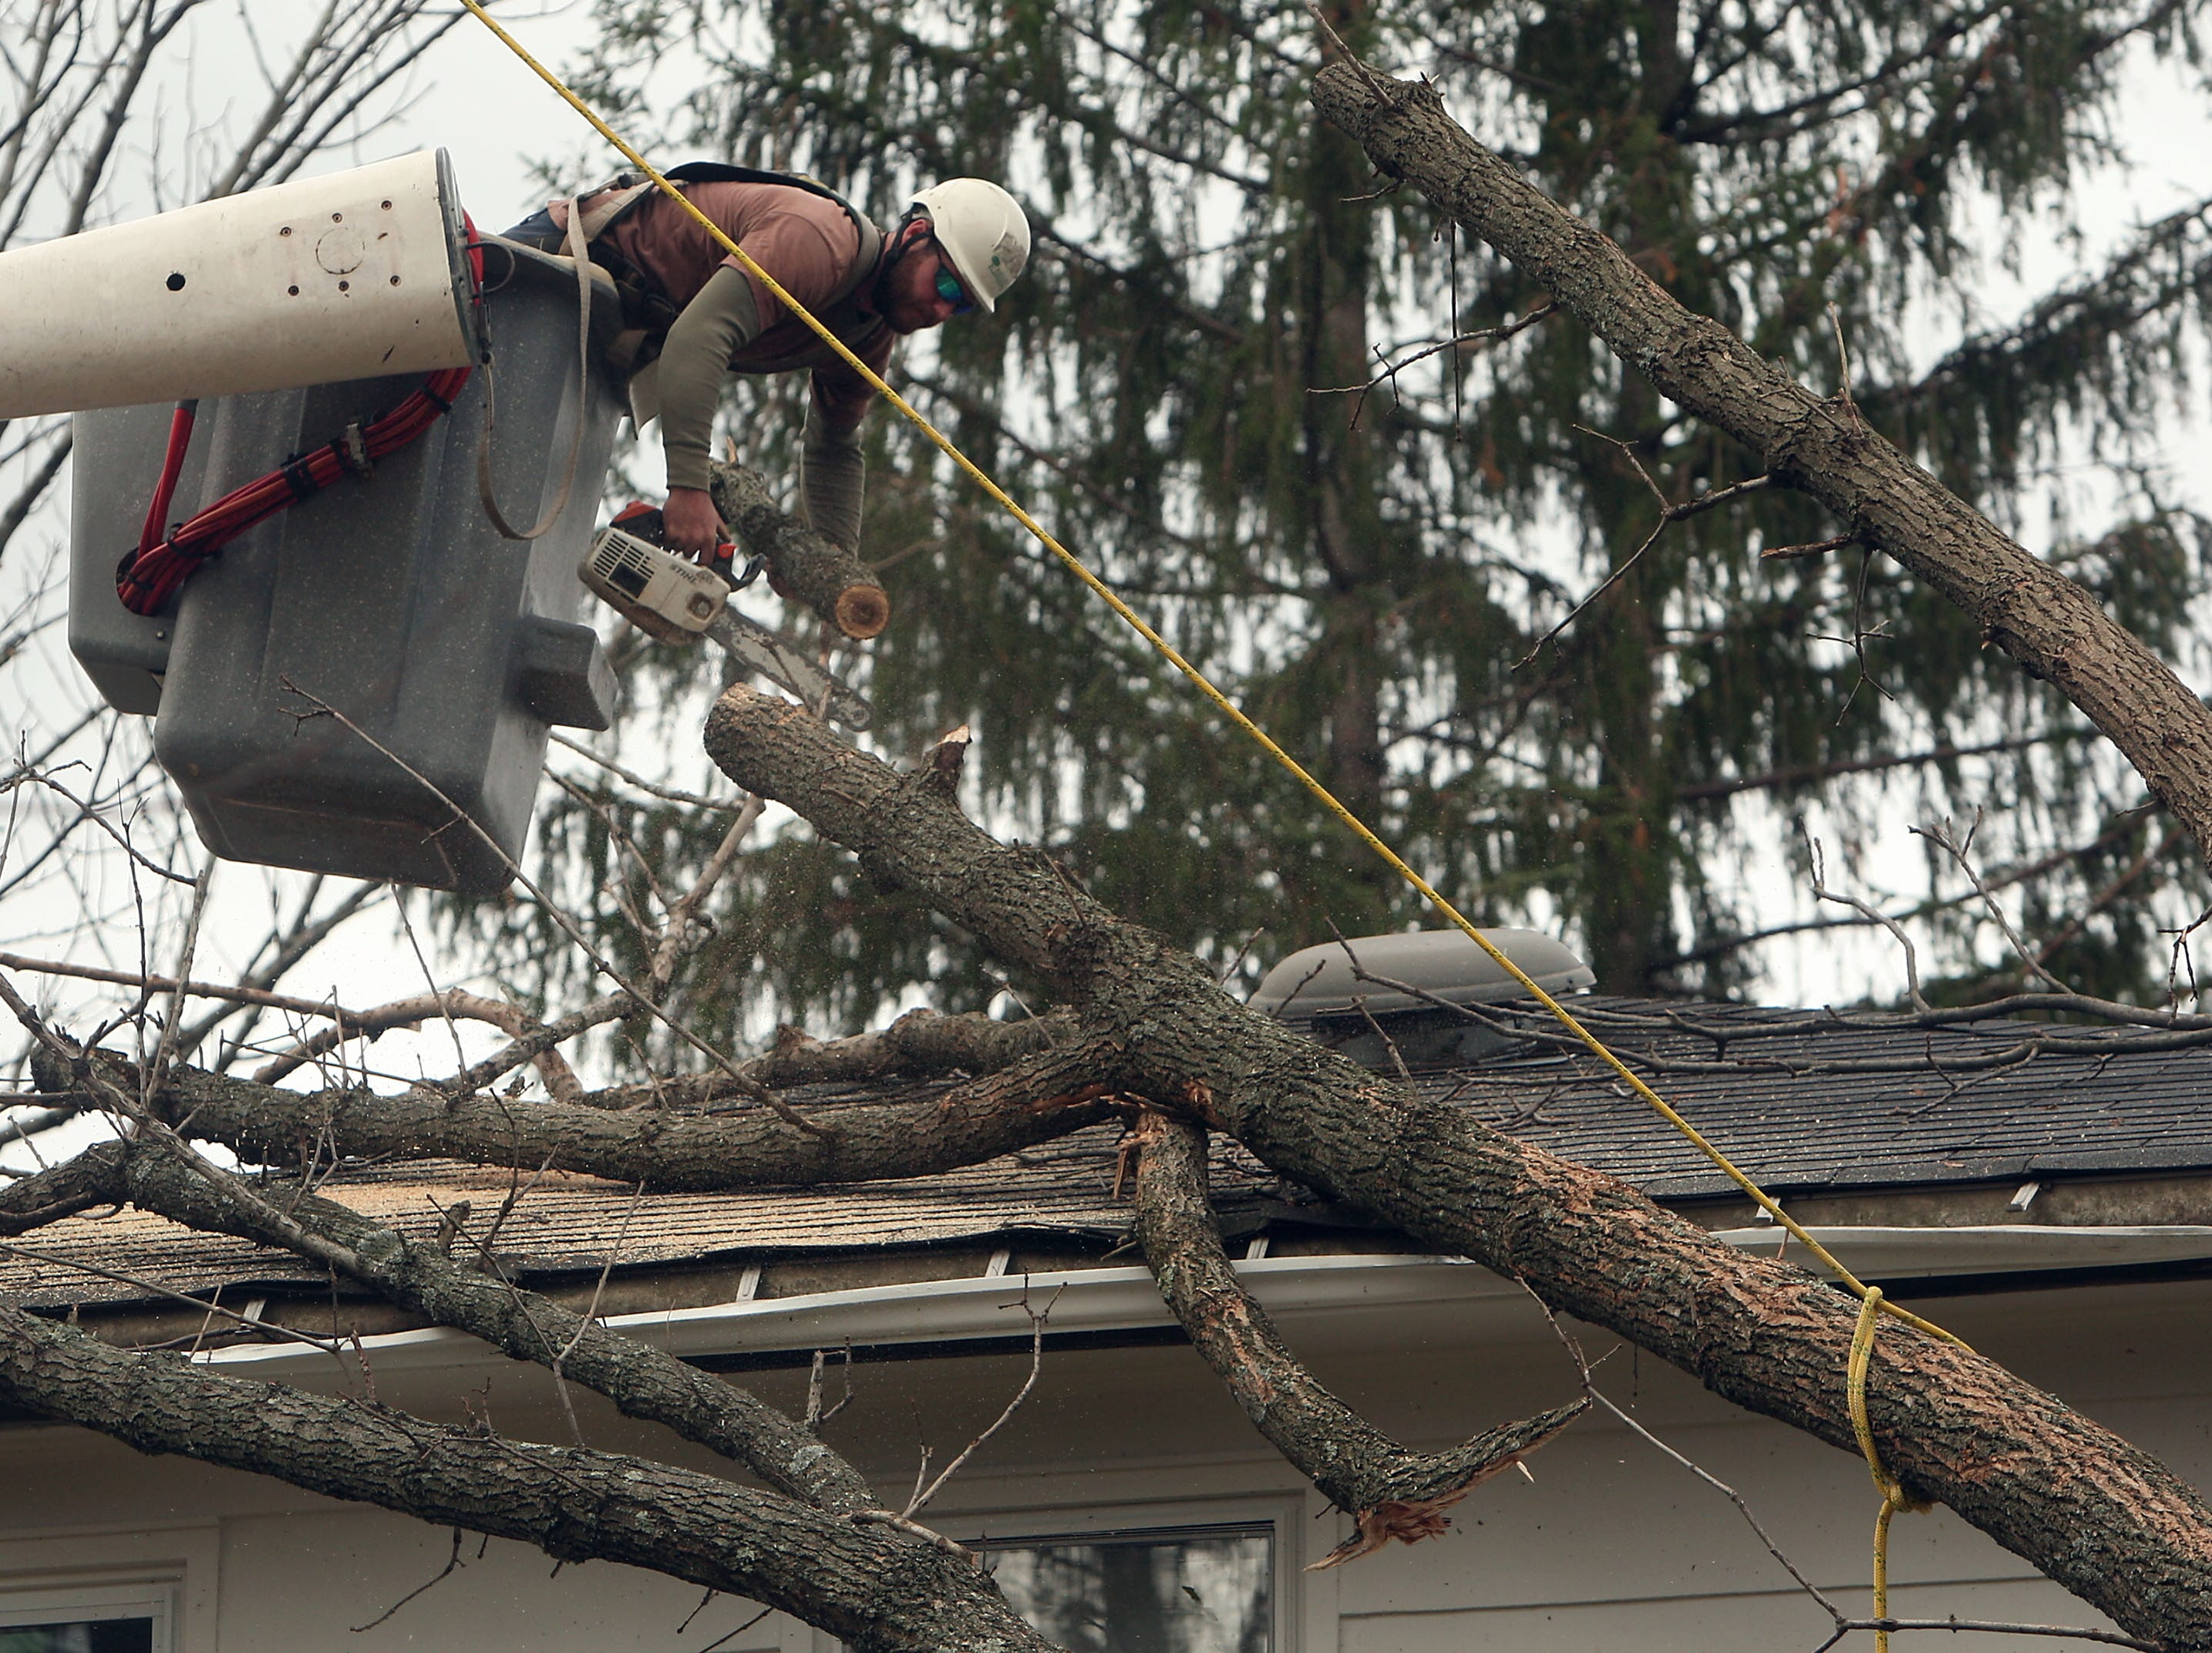 Madison, NJ- November 1, 2012--A contractor for Bartlett Tree Services cuts down a large tree that landing on a Madison, NJ home as locals continue the recovery process after Hurricane Sandy devastated the eastern seaboard.Bob Karp/Staff Photographer/DAILY RECORD